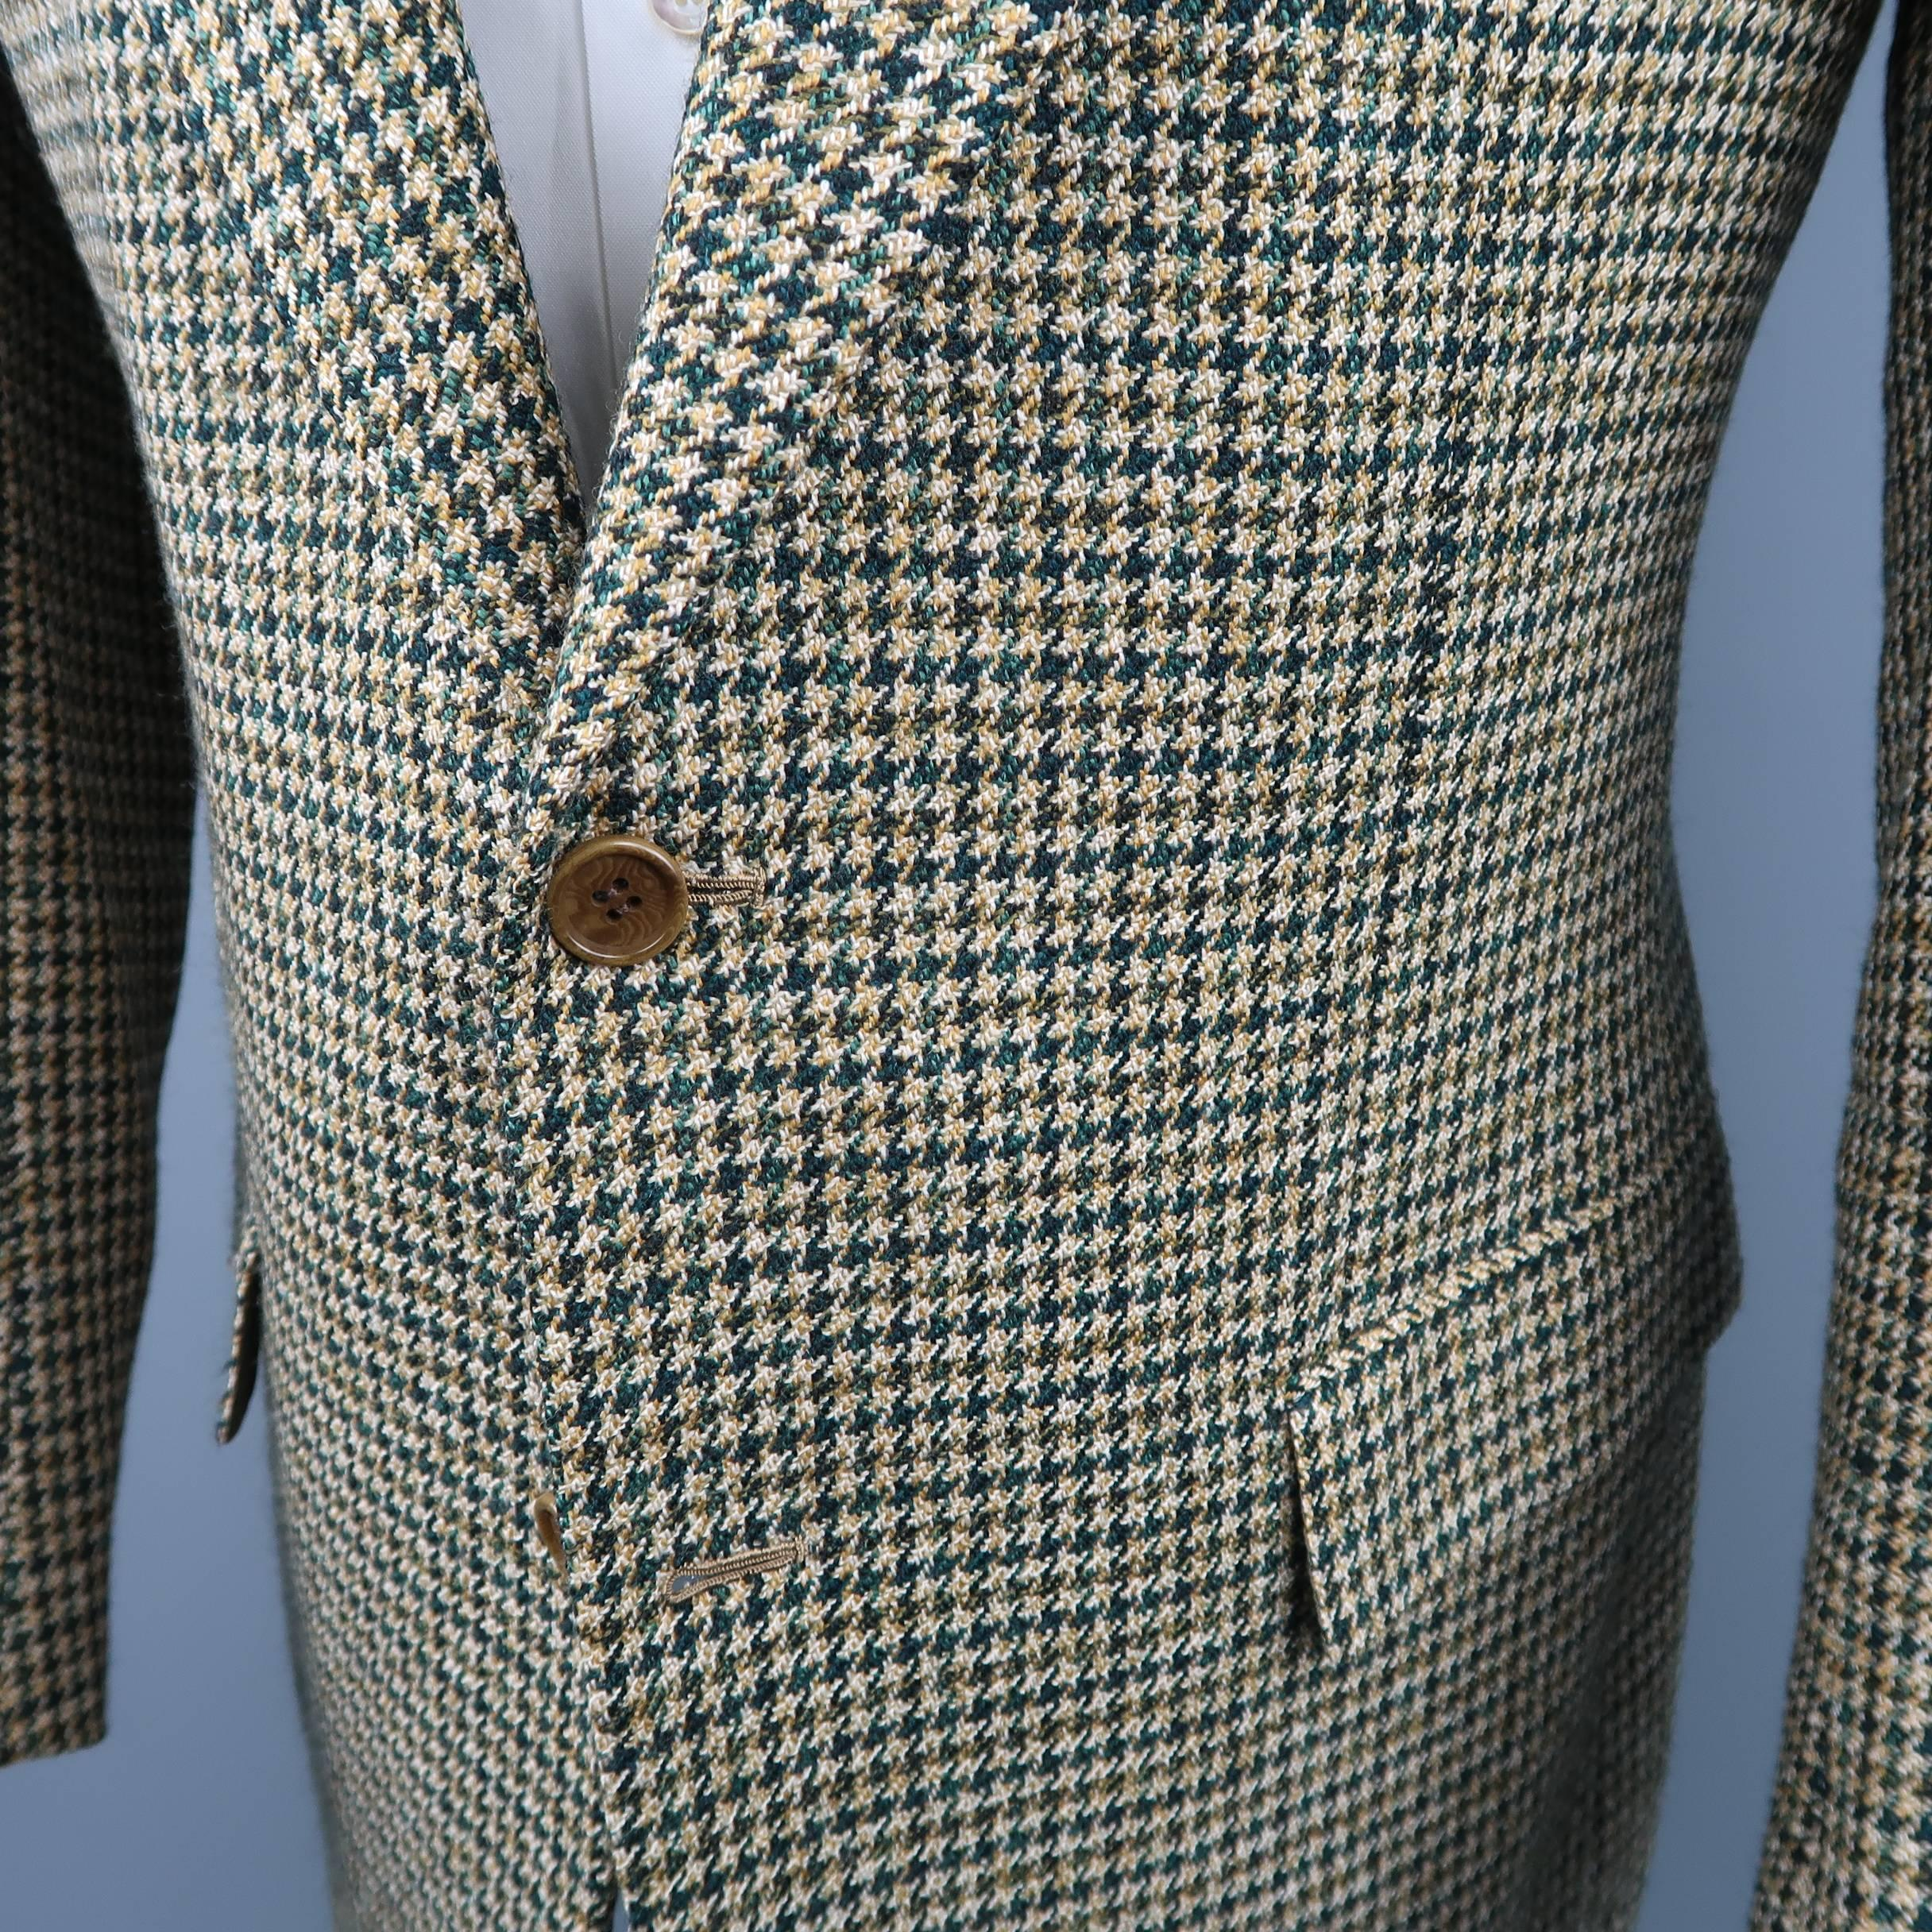 2ca59794c30 Men's KITON 40 Green and Tan Gold Houndstooth Wool / Cashmere Notch Lapel  Sport Co For Sale at 1stdibs